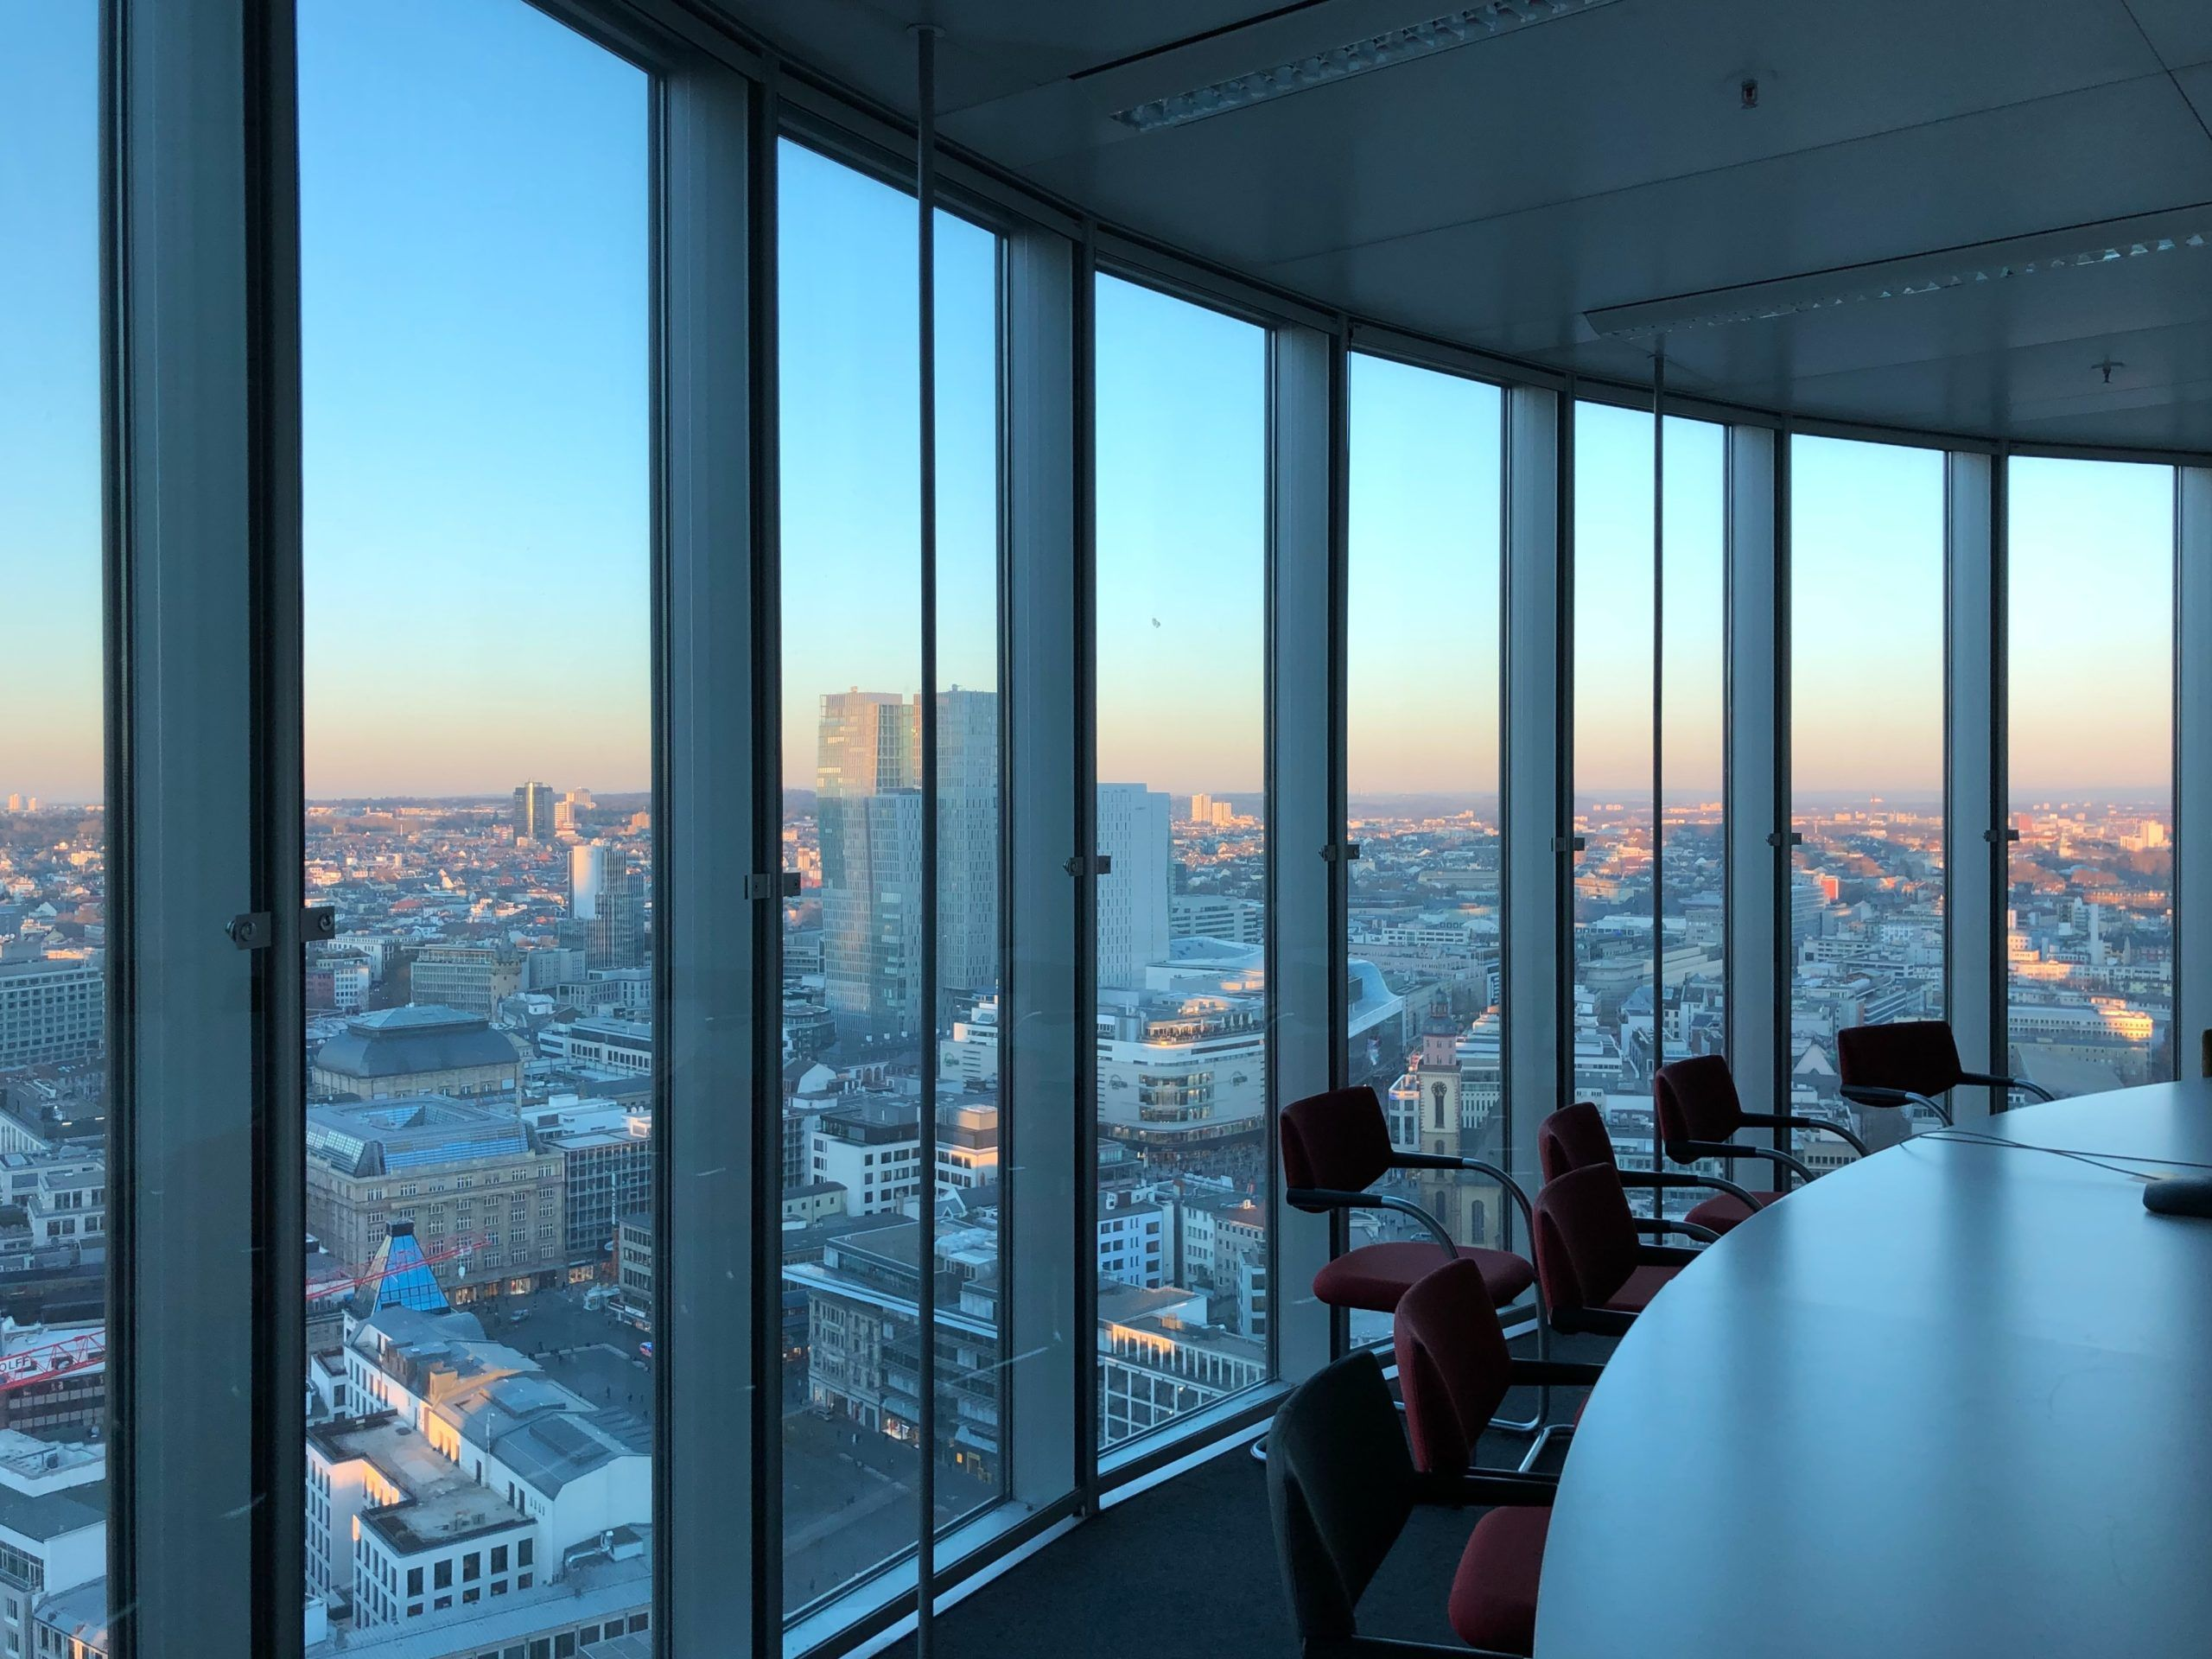 Photo of a board room with glass windows overlooking a city skyline.